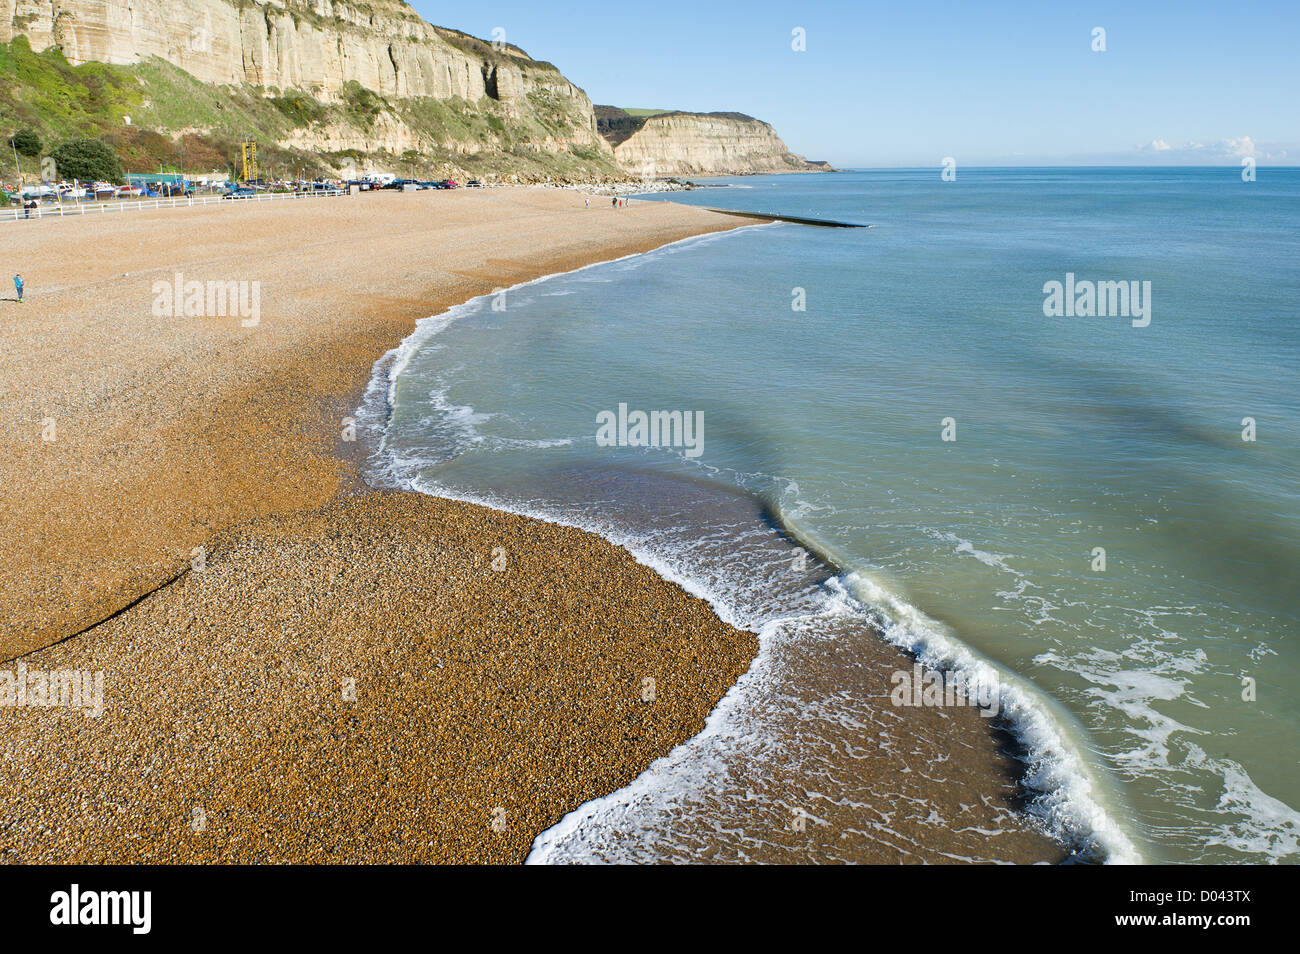 A shingle beach in Old Hastings. - Stock Image